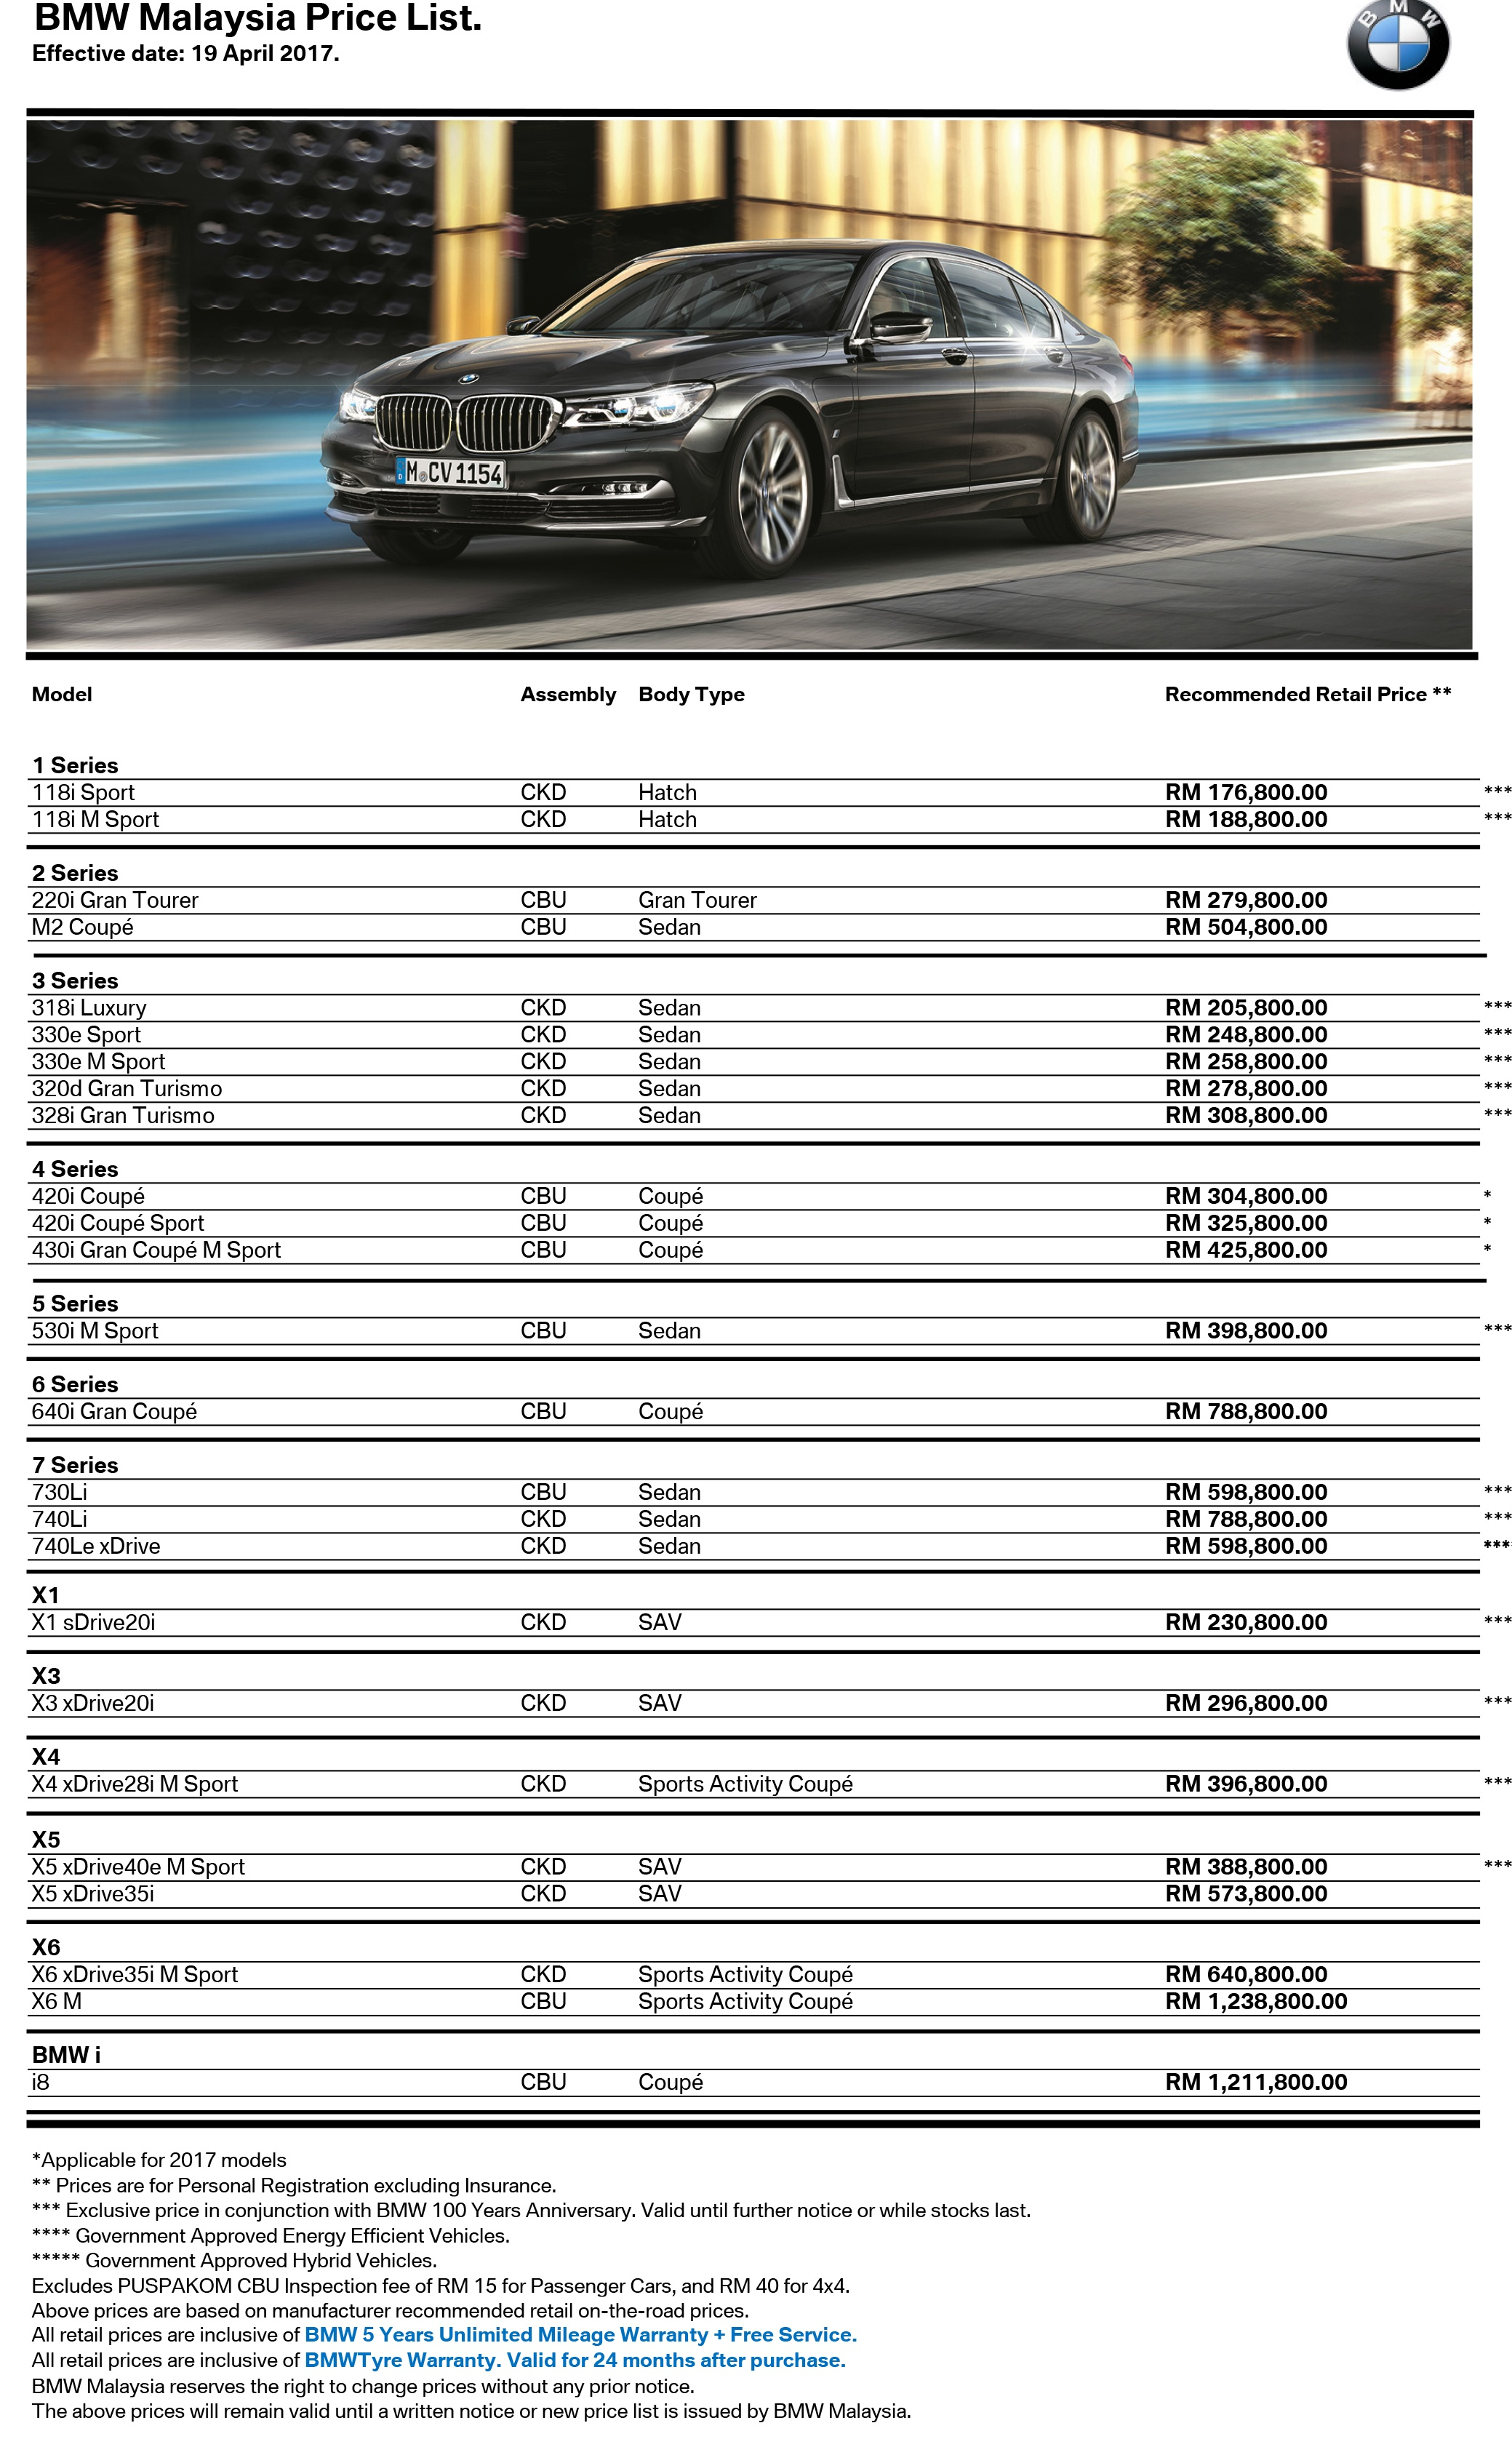 Mm2h Car Price List 2017 >> Bmw Model And Price In Malaysia - Auto Express